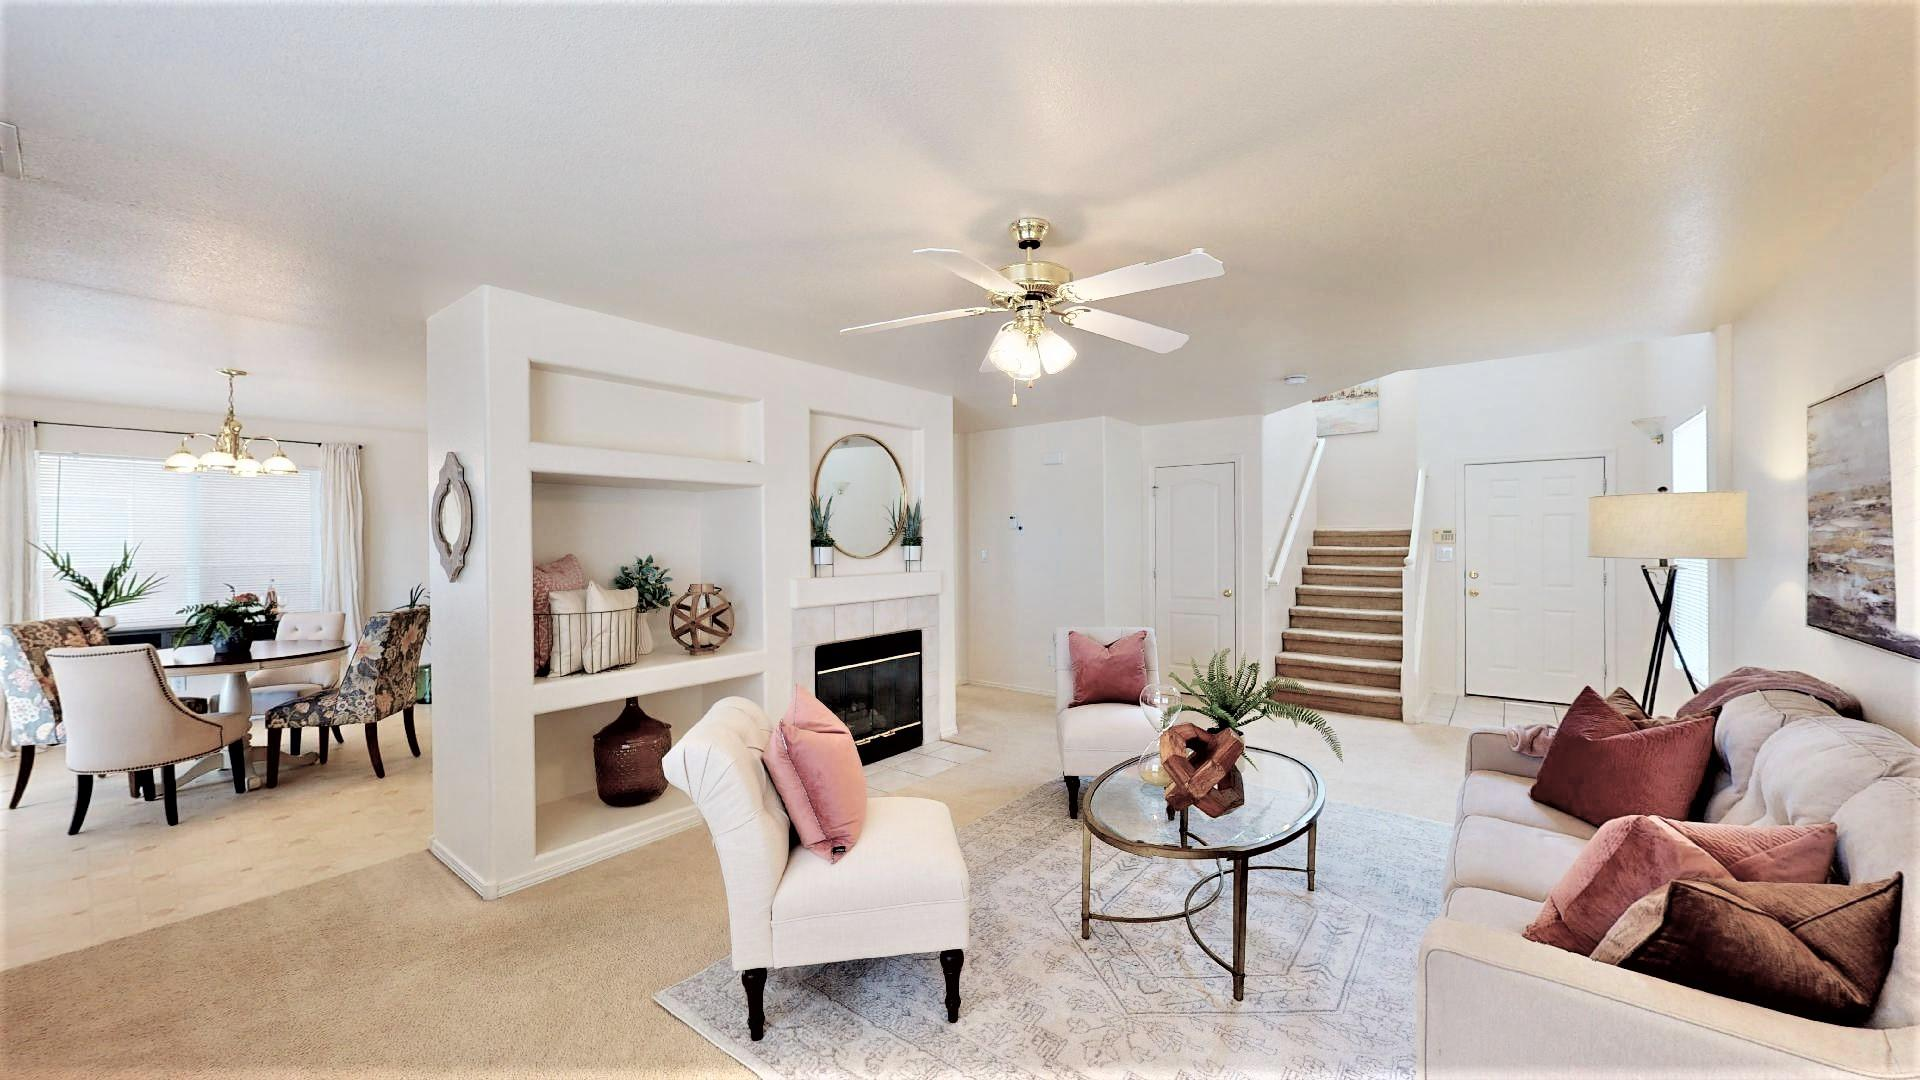 Spacious, light and airy!  This home offers ample sized bedrooms - all with walk-in closets, nice views, and easy commute to Paseo Del Norte.  Large master bedroom overlooks park and open space.  All this within a quiet gated community.  It is ready for you to make it your own!